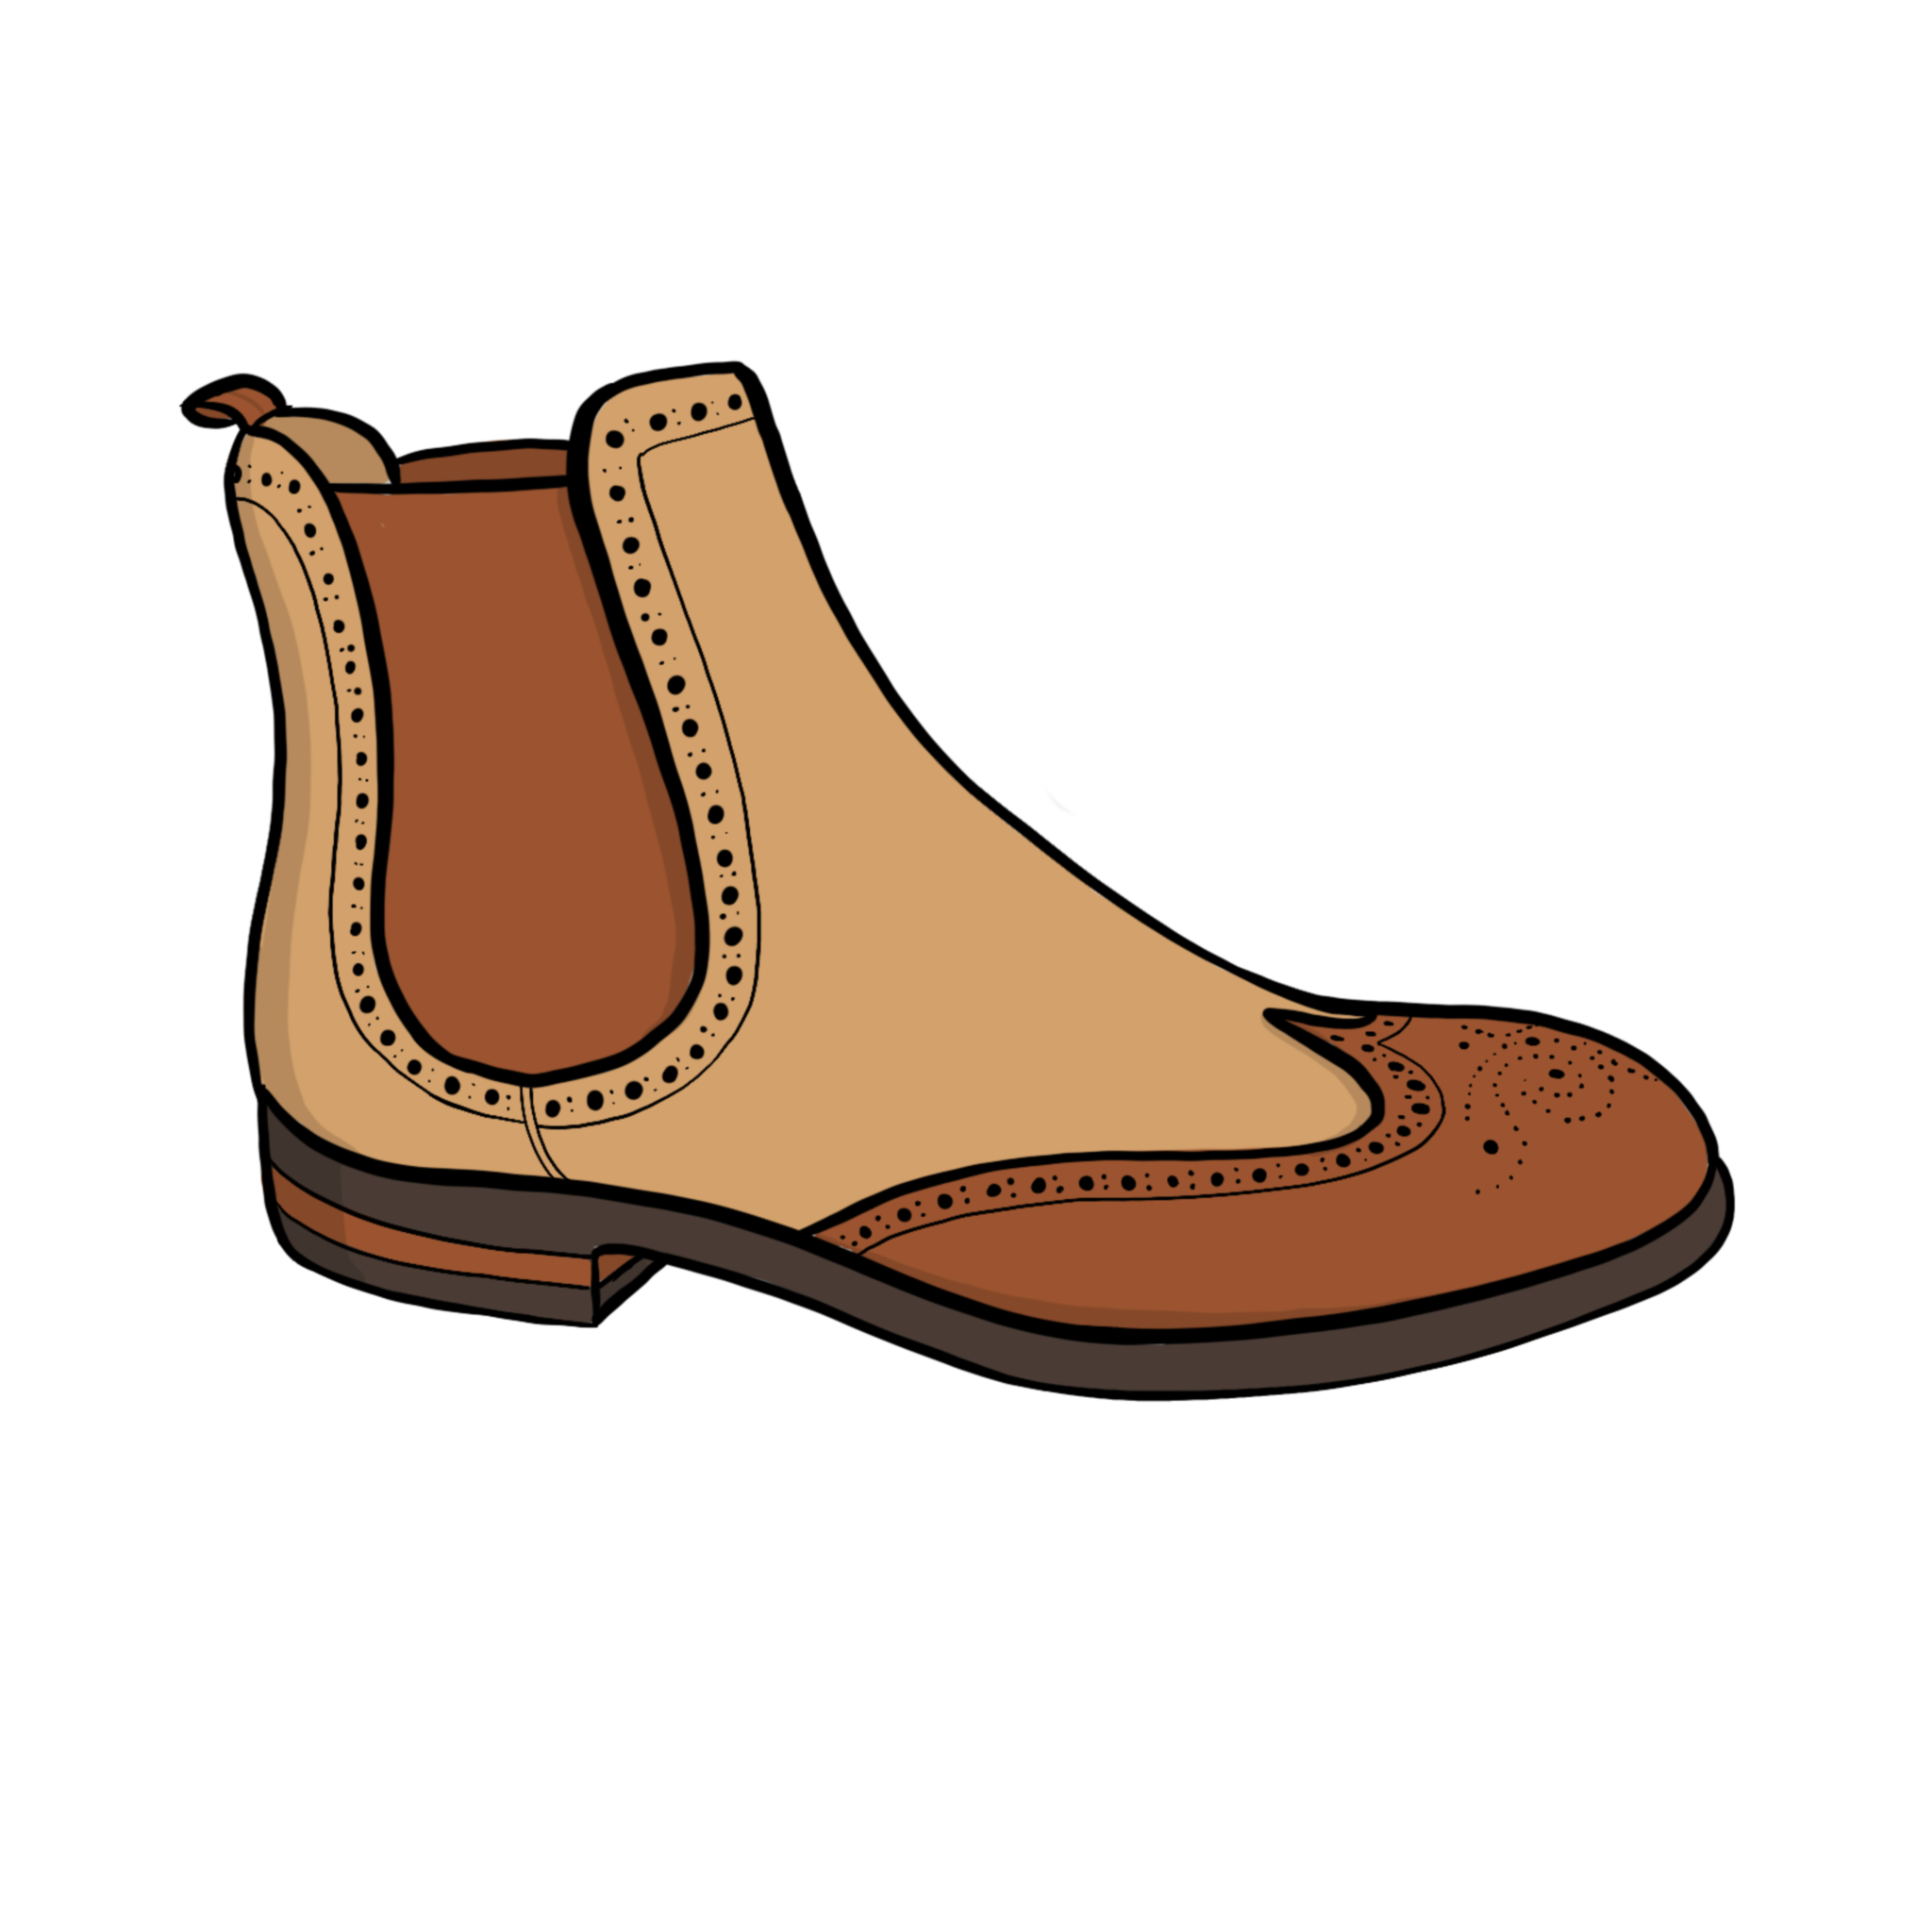 Drawing of a boot